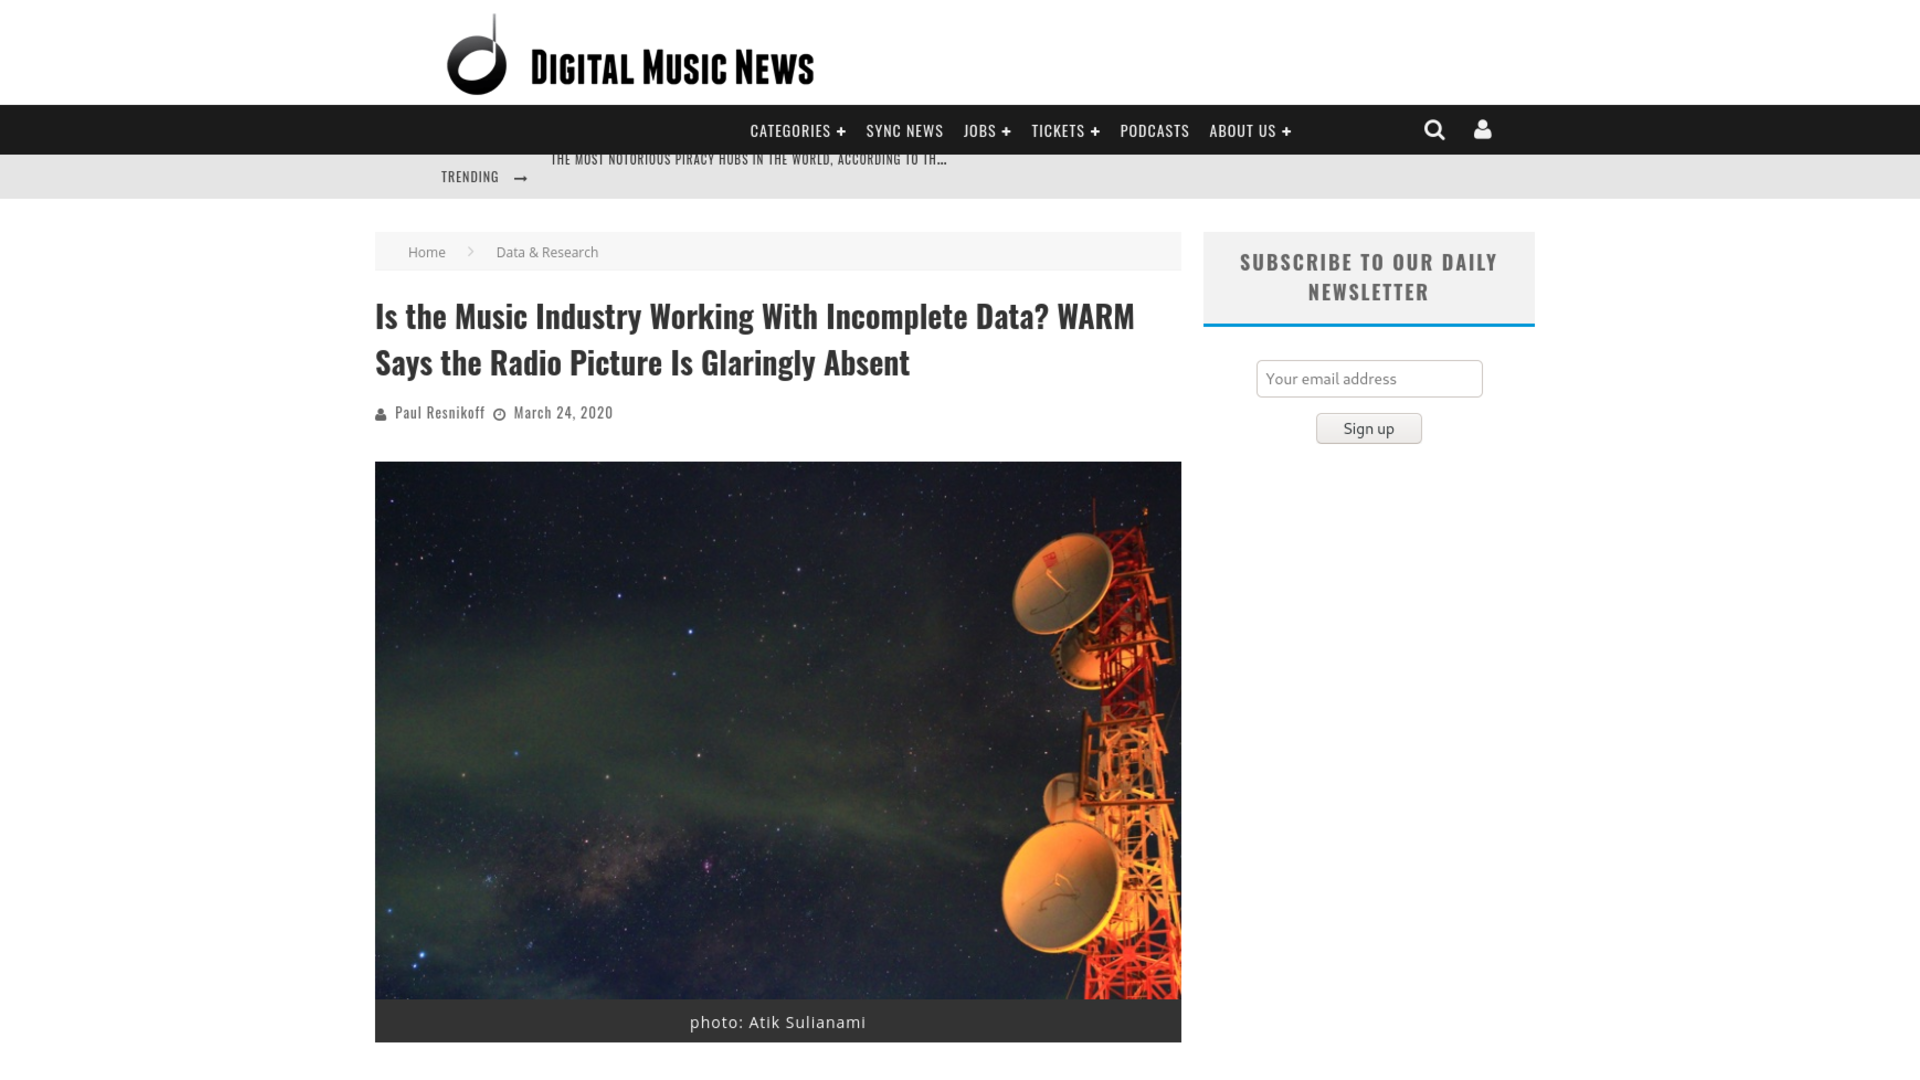 Fairness Rocks News Is the Music Industry Working With Incomplete Data? WARM Says the Radio Picture Is Glaringly Absent